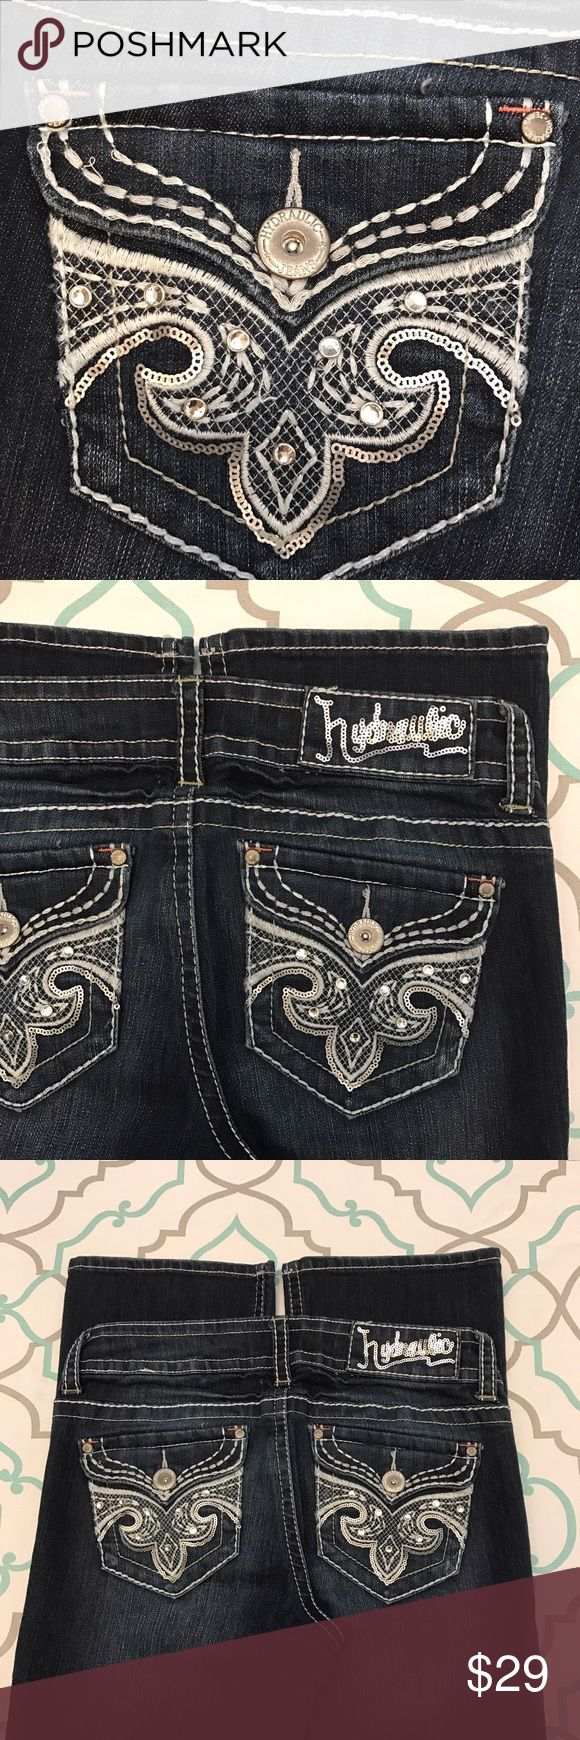 """💙👖Gorgeous Hydraulic Jeans👖💙29 7/8 32"""" Bling!! 💙👖Gorgeous Hydraulic Jeans👖💙 Size 29 (7/8). 31.75"""" Inseam. 8"""" Rise. 14.25"""" Across Back. Amazing Stretch. Dark Blue Wash. Lola Slim Boot. Thick White Stitching! Bling! Sequins! So Pretty! & So Cute! Light Fading! Excellent Used Condition! Hydraulic! Ask me any questions! : ) Hydraulic Jeans Boot Cut"""